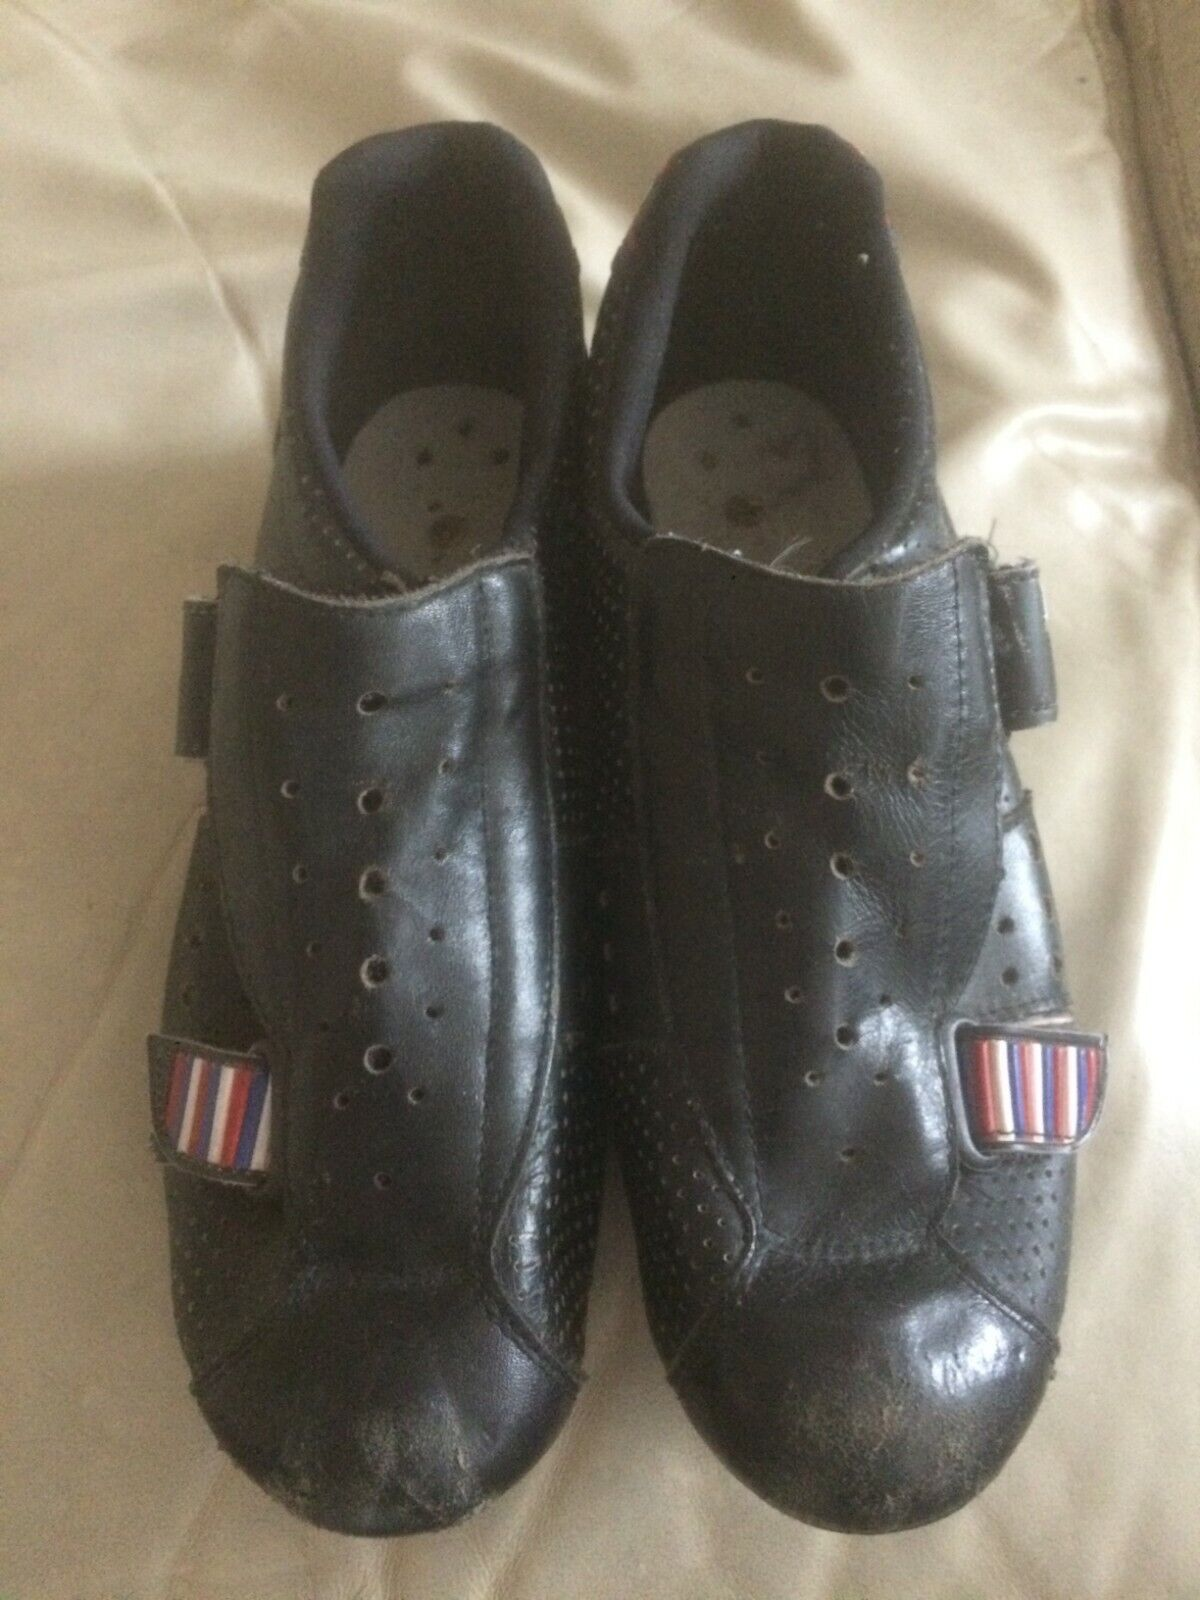 Pinarello leather cycling scarpe 42 made in  Look cleat compatible